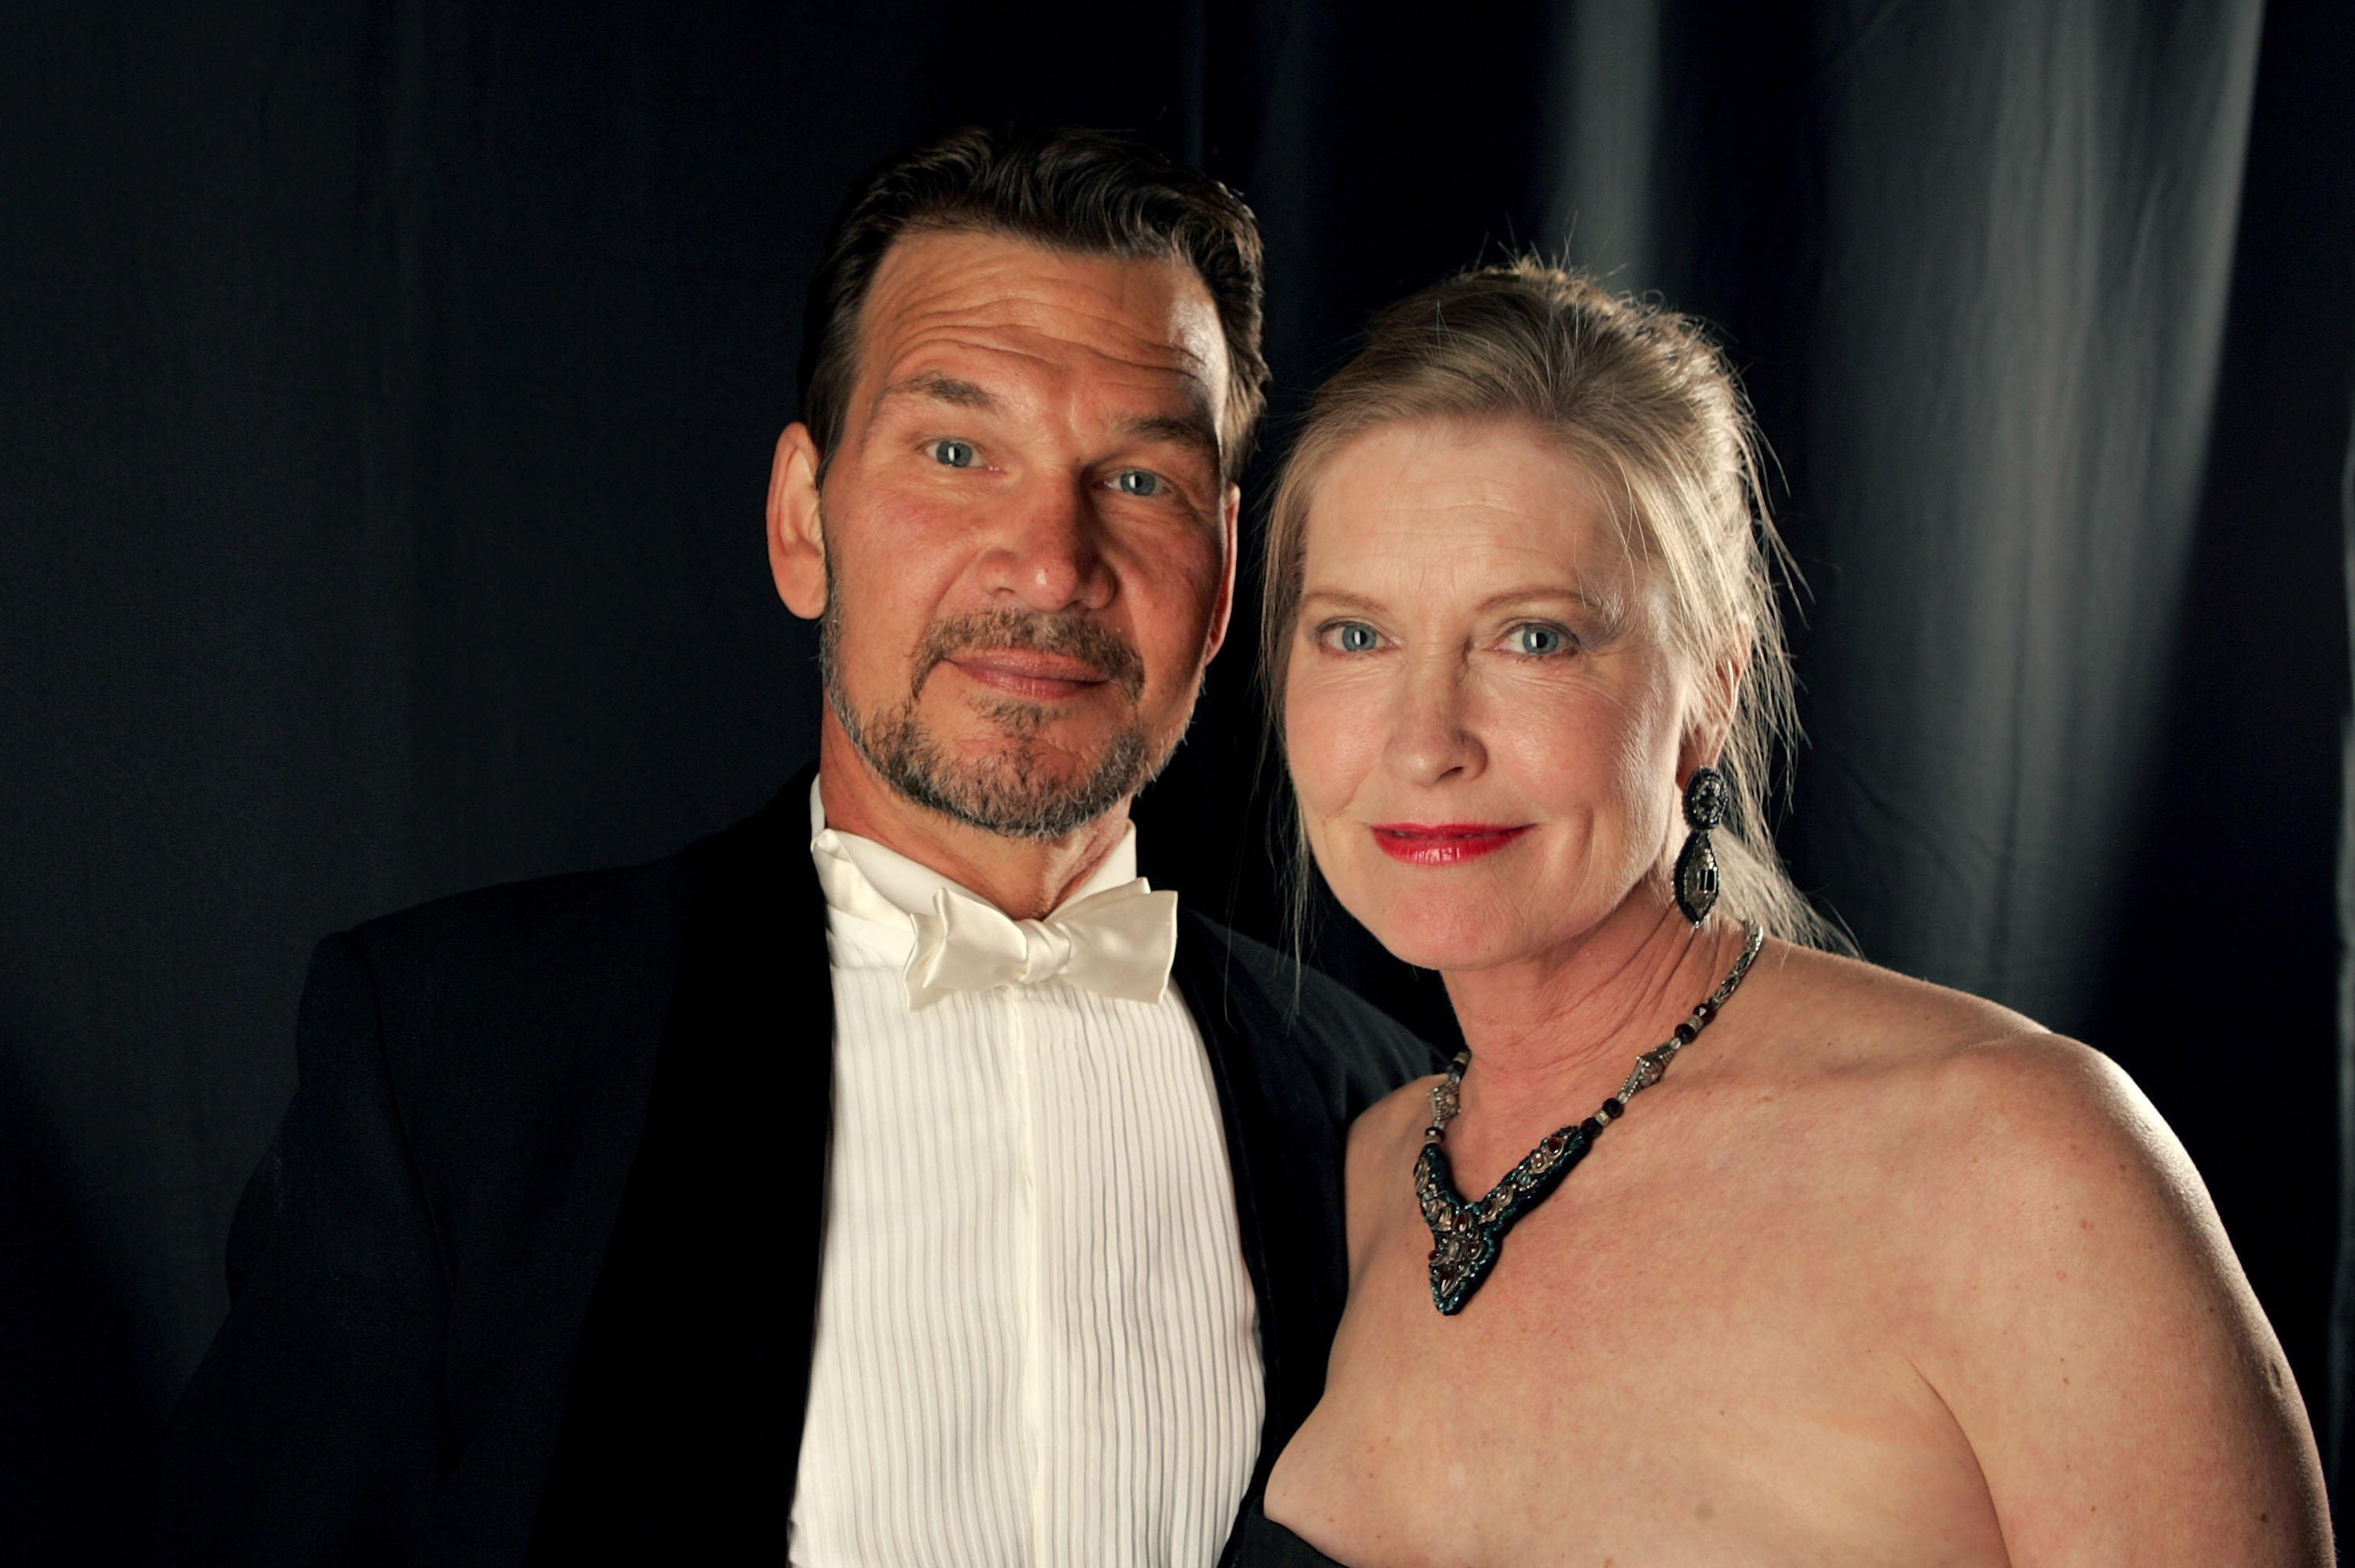 Patrick Swayze  and wife Lisa Niemi pose backstage during the 9th annual Costume Designers Guild Awards held at the Beverly Wilshire Hotel on February 17, 2007 | Photo: GettyImages